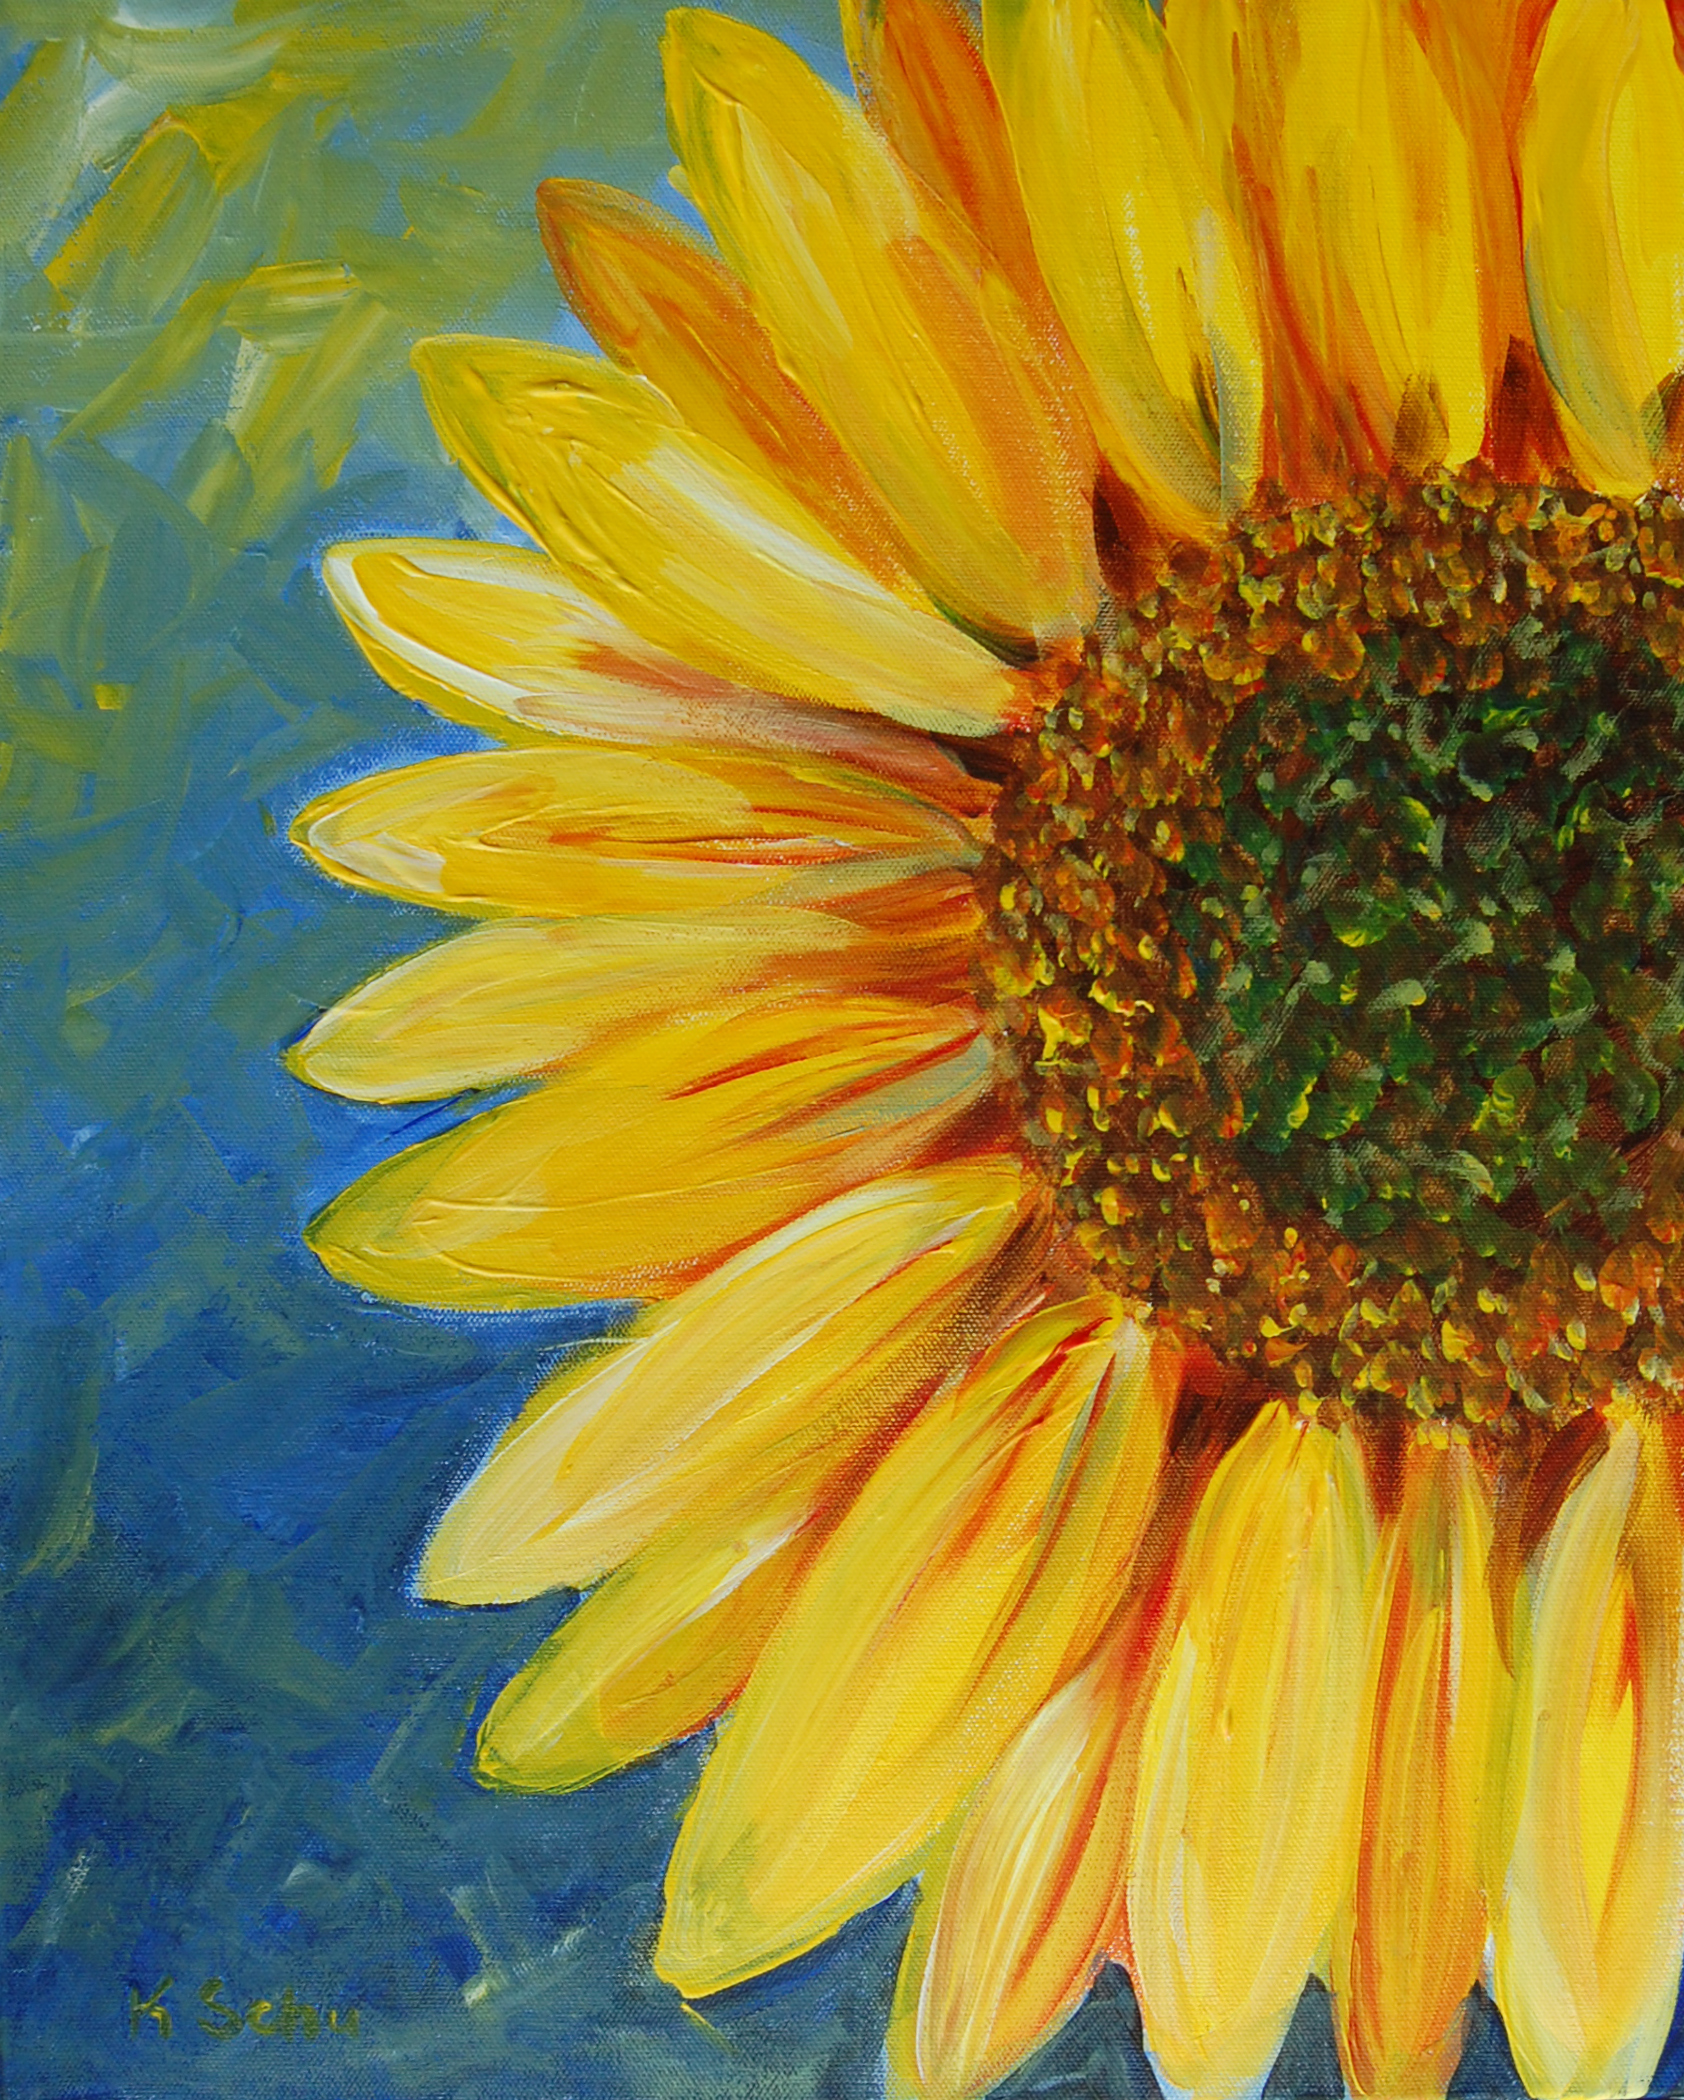 Sunflower painting party tuesday 29 mar 6 30 pm in niceville for Free photo paint